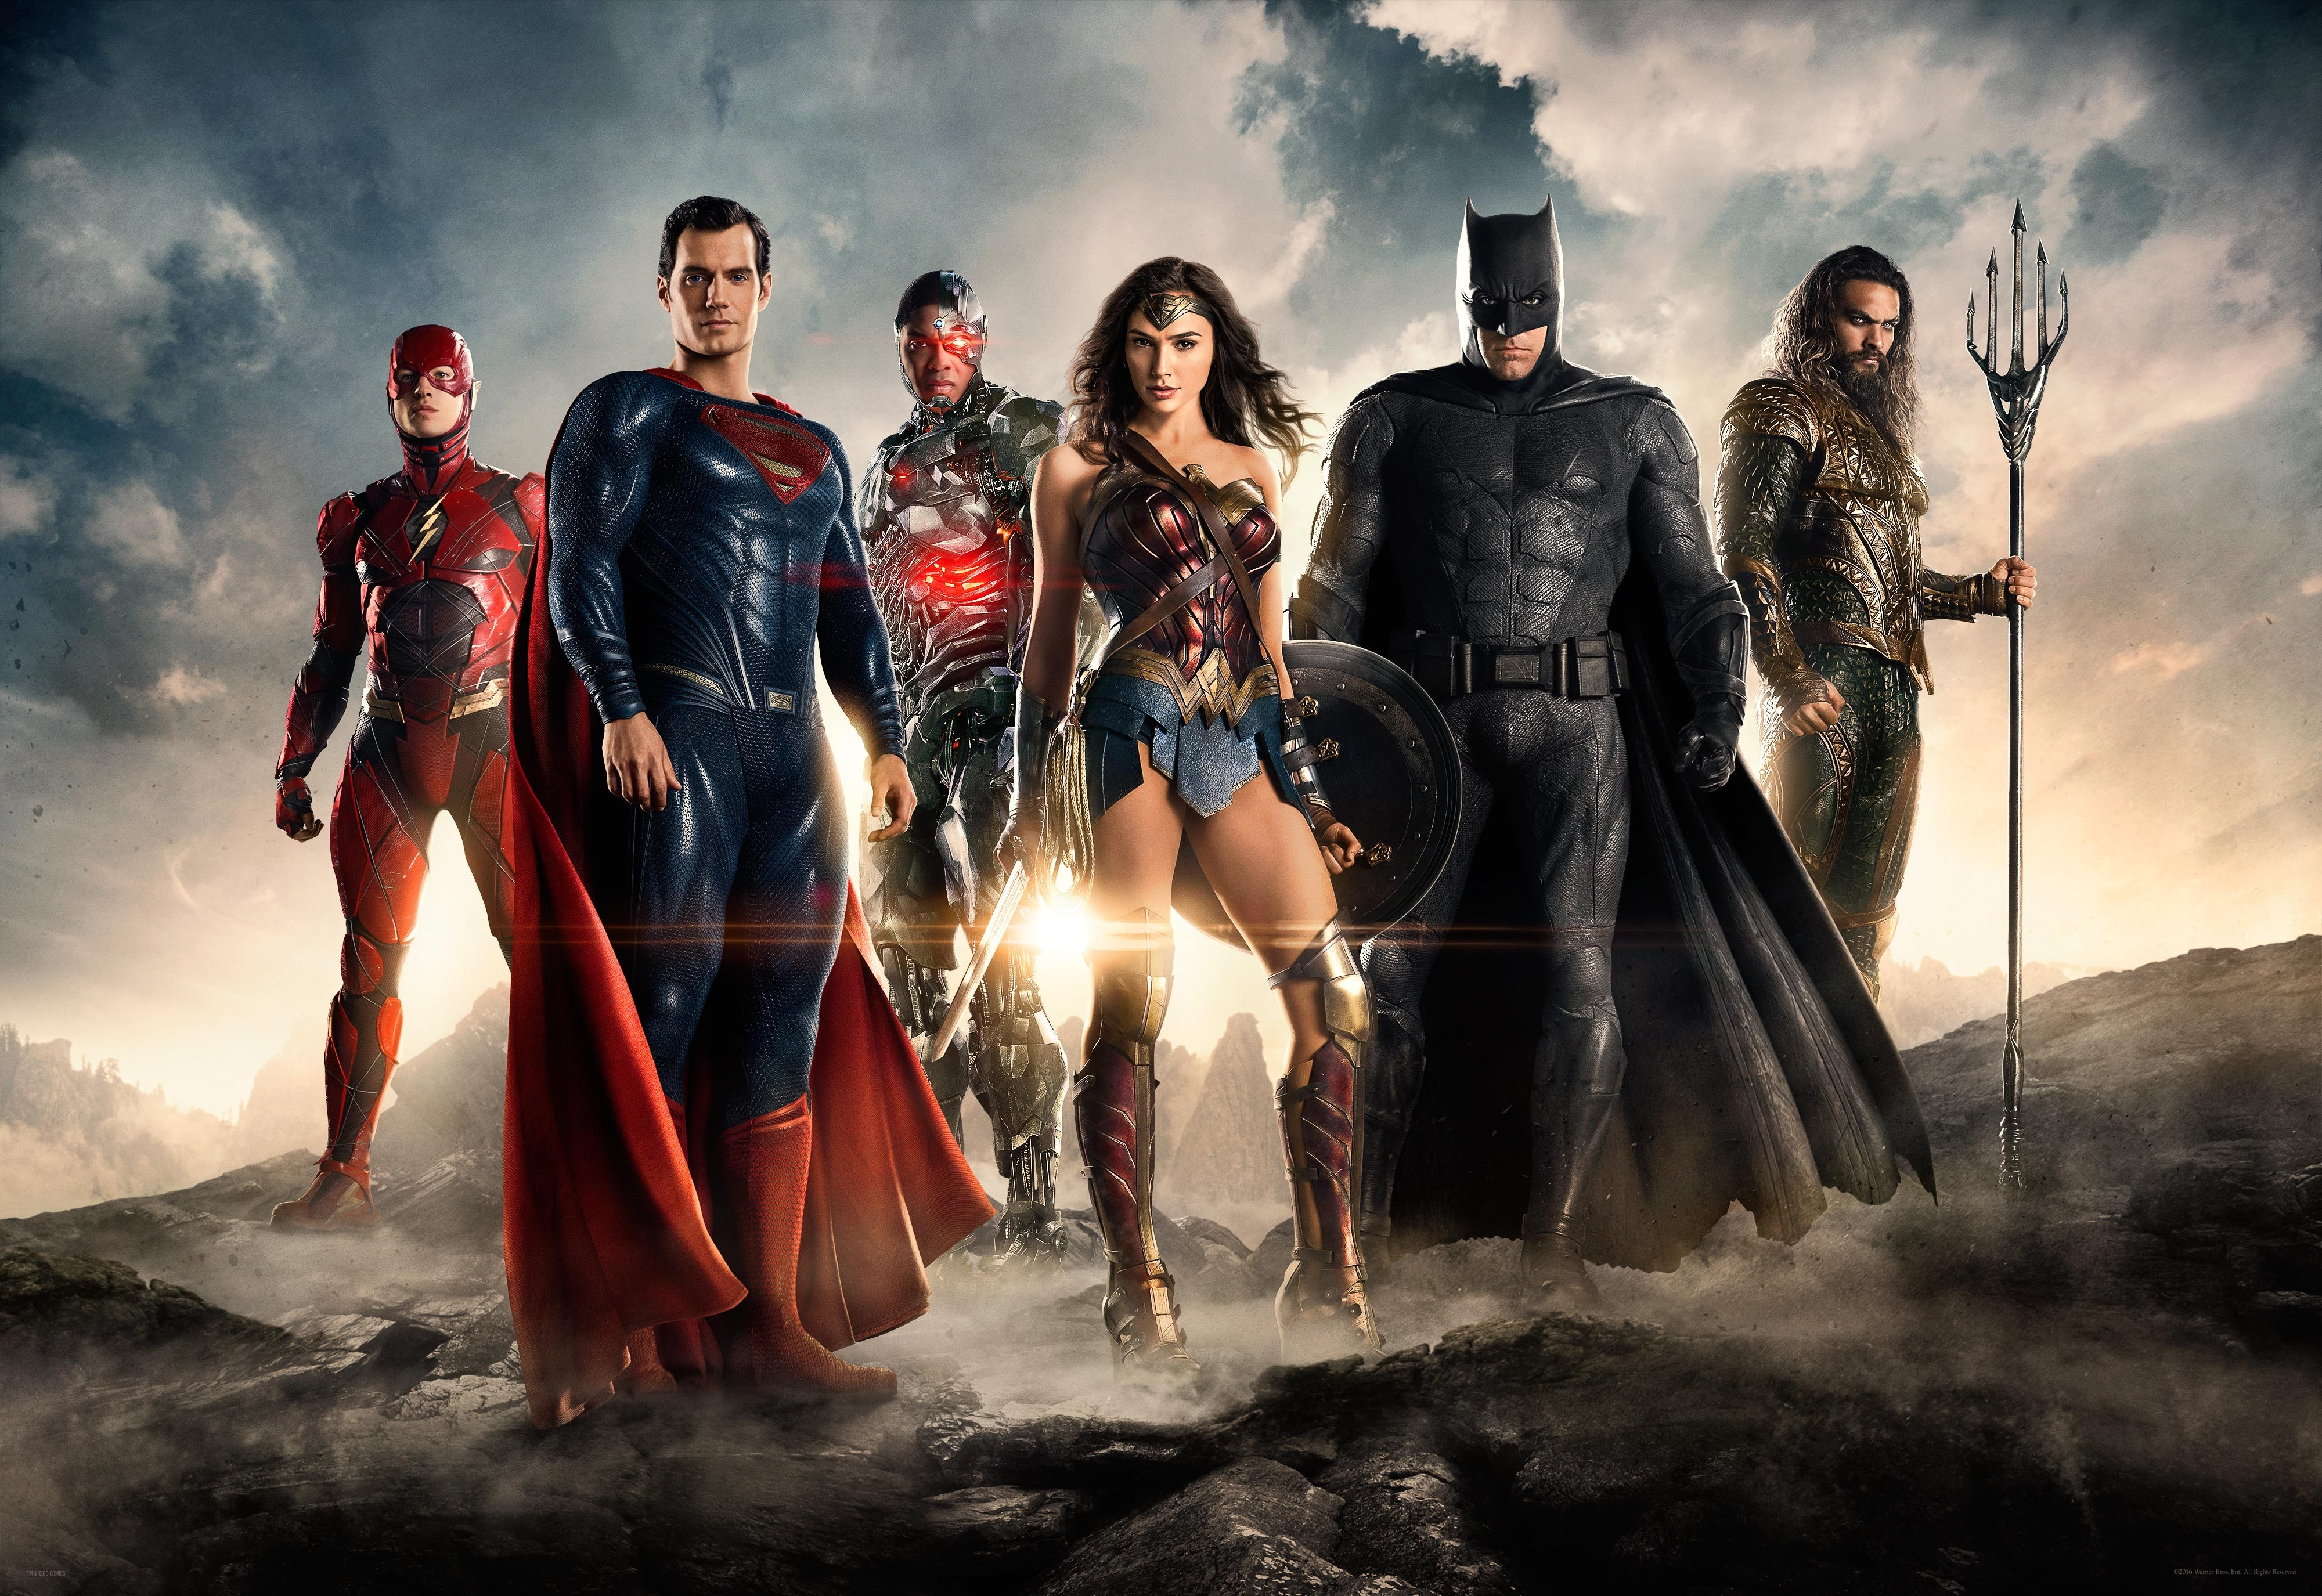 Justice League 4k - Justice League 4k - wonder woman wallpapers, the flash wallpapers, superman wallpapers, movies wallpapers, justice league wallpapers, batman wallpapers, aquaman wallpapers, 4k-wallpapers